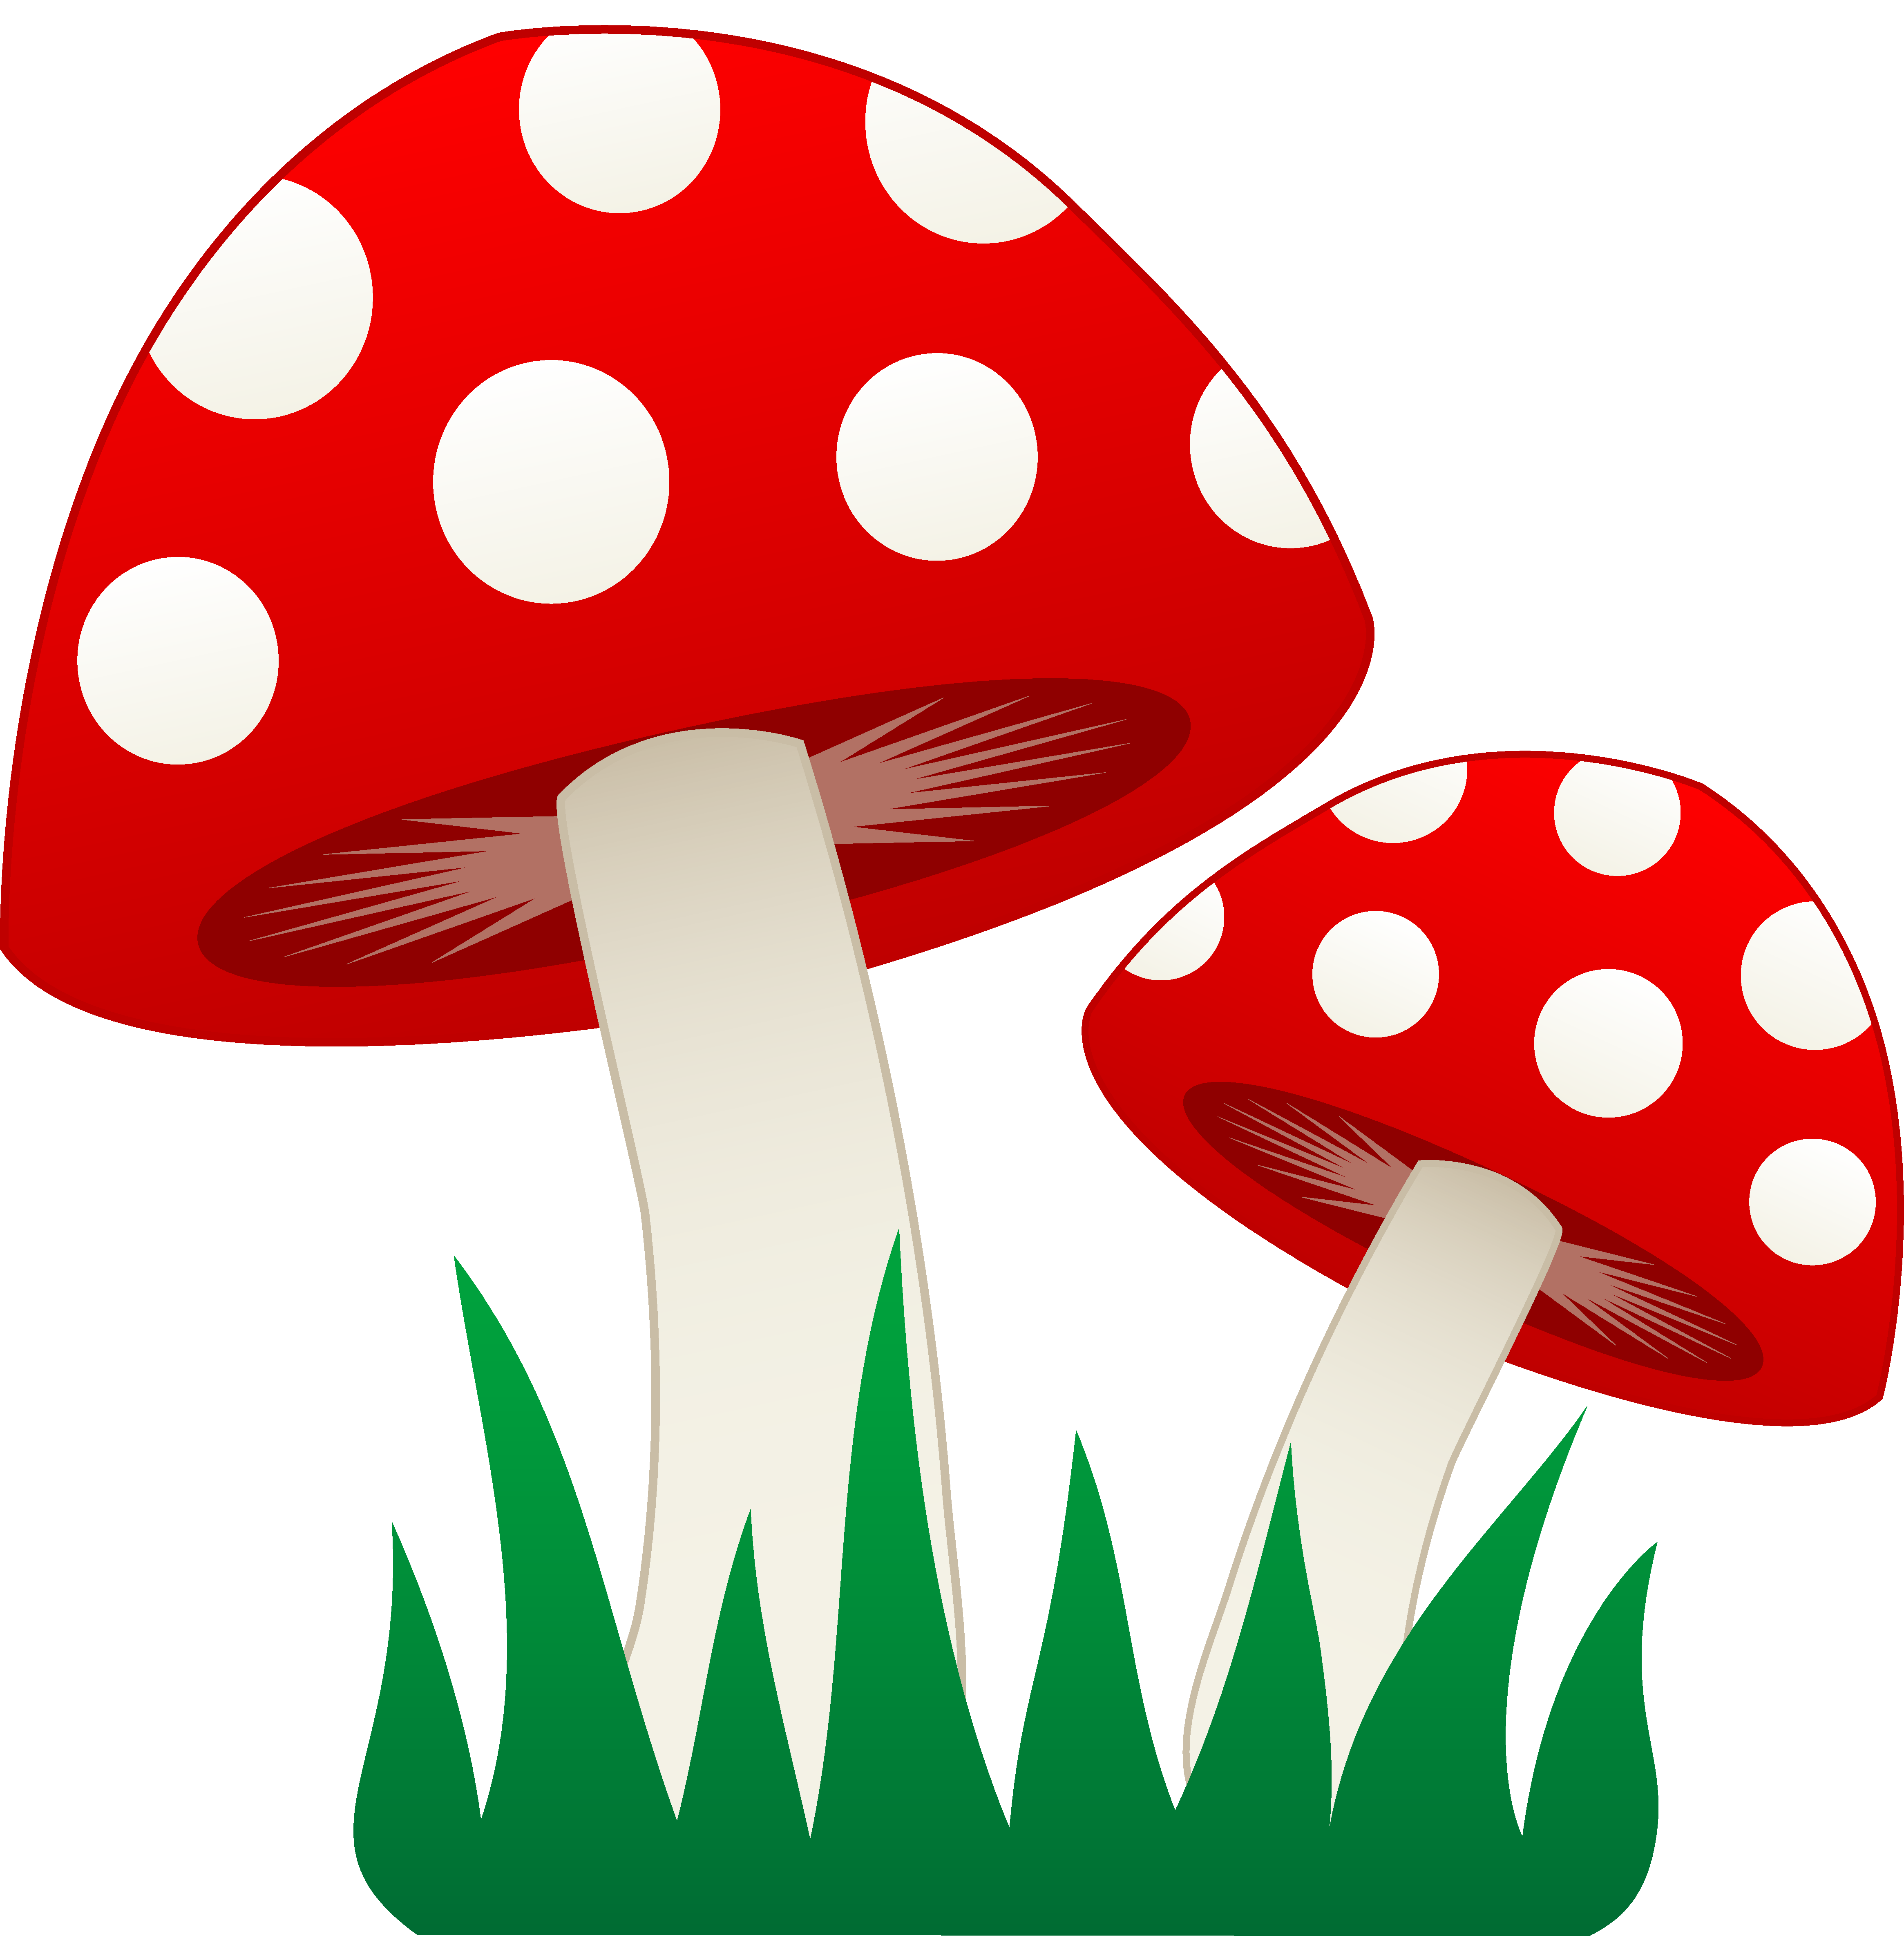 Mushroom house clipart svg transparent Mushroom House Clipart at GetDrawings.com | Free for personal use ... svg transparent